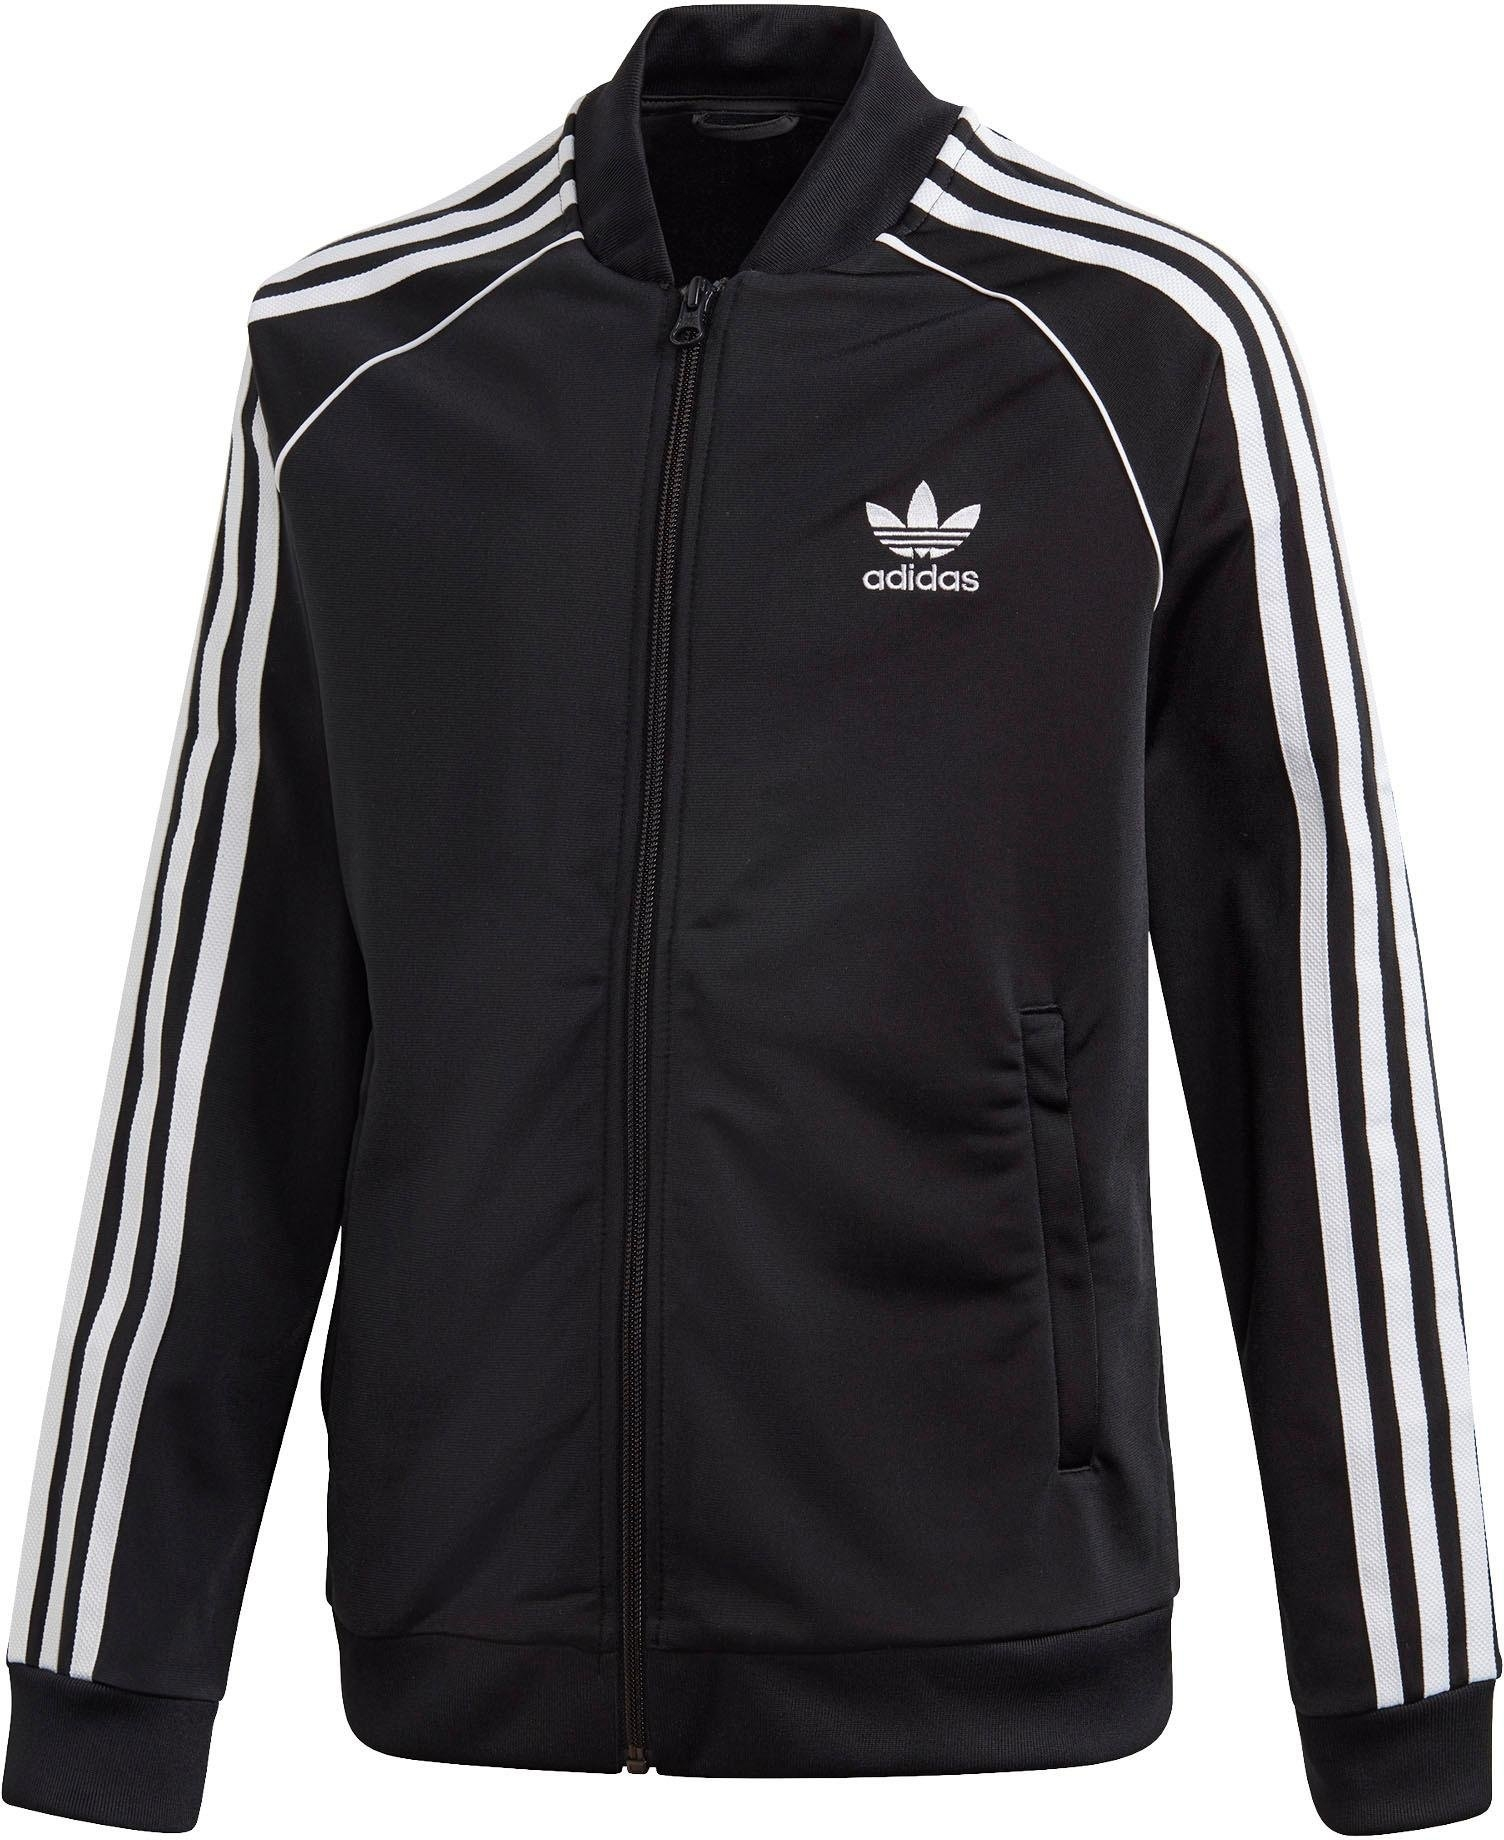 adidas Originals trainingsjack »SUPERSTAR TRACKTOP« nu online bestellen